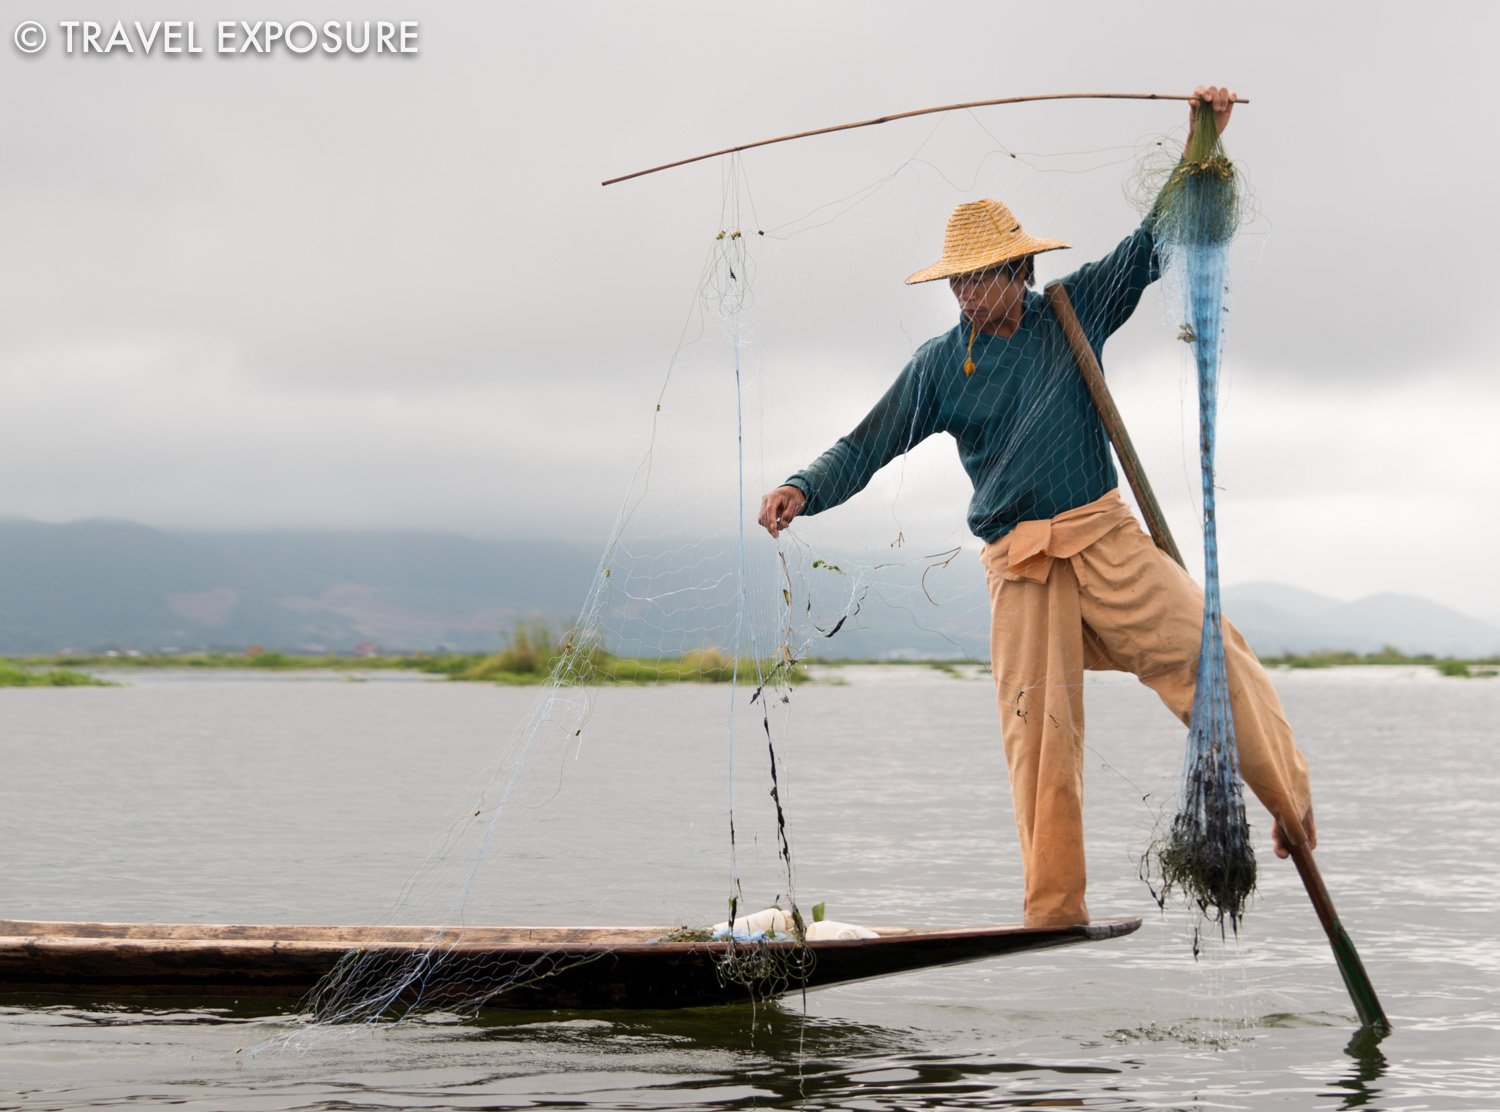 WEEK OF OCTOBER 13 A fisherman rows with his leg while pulling up a net on Inle Lake, Myanmar.